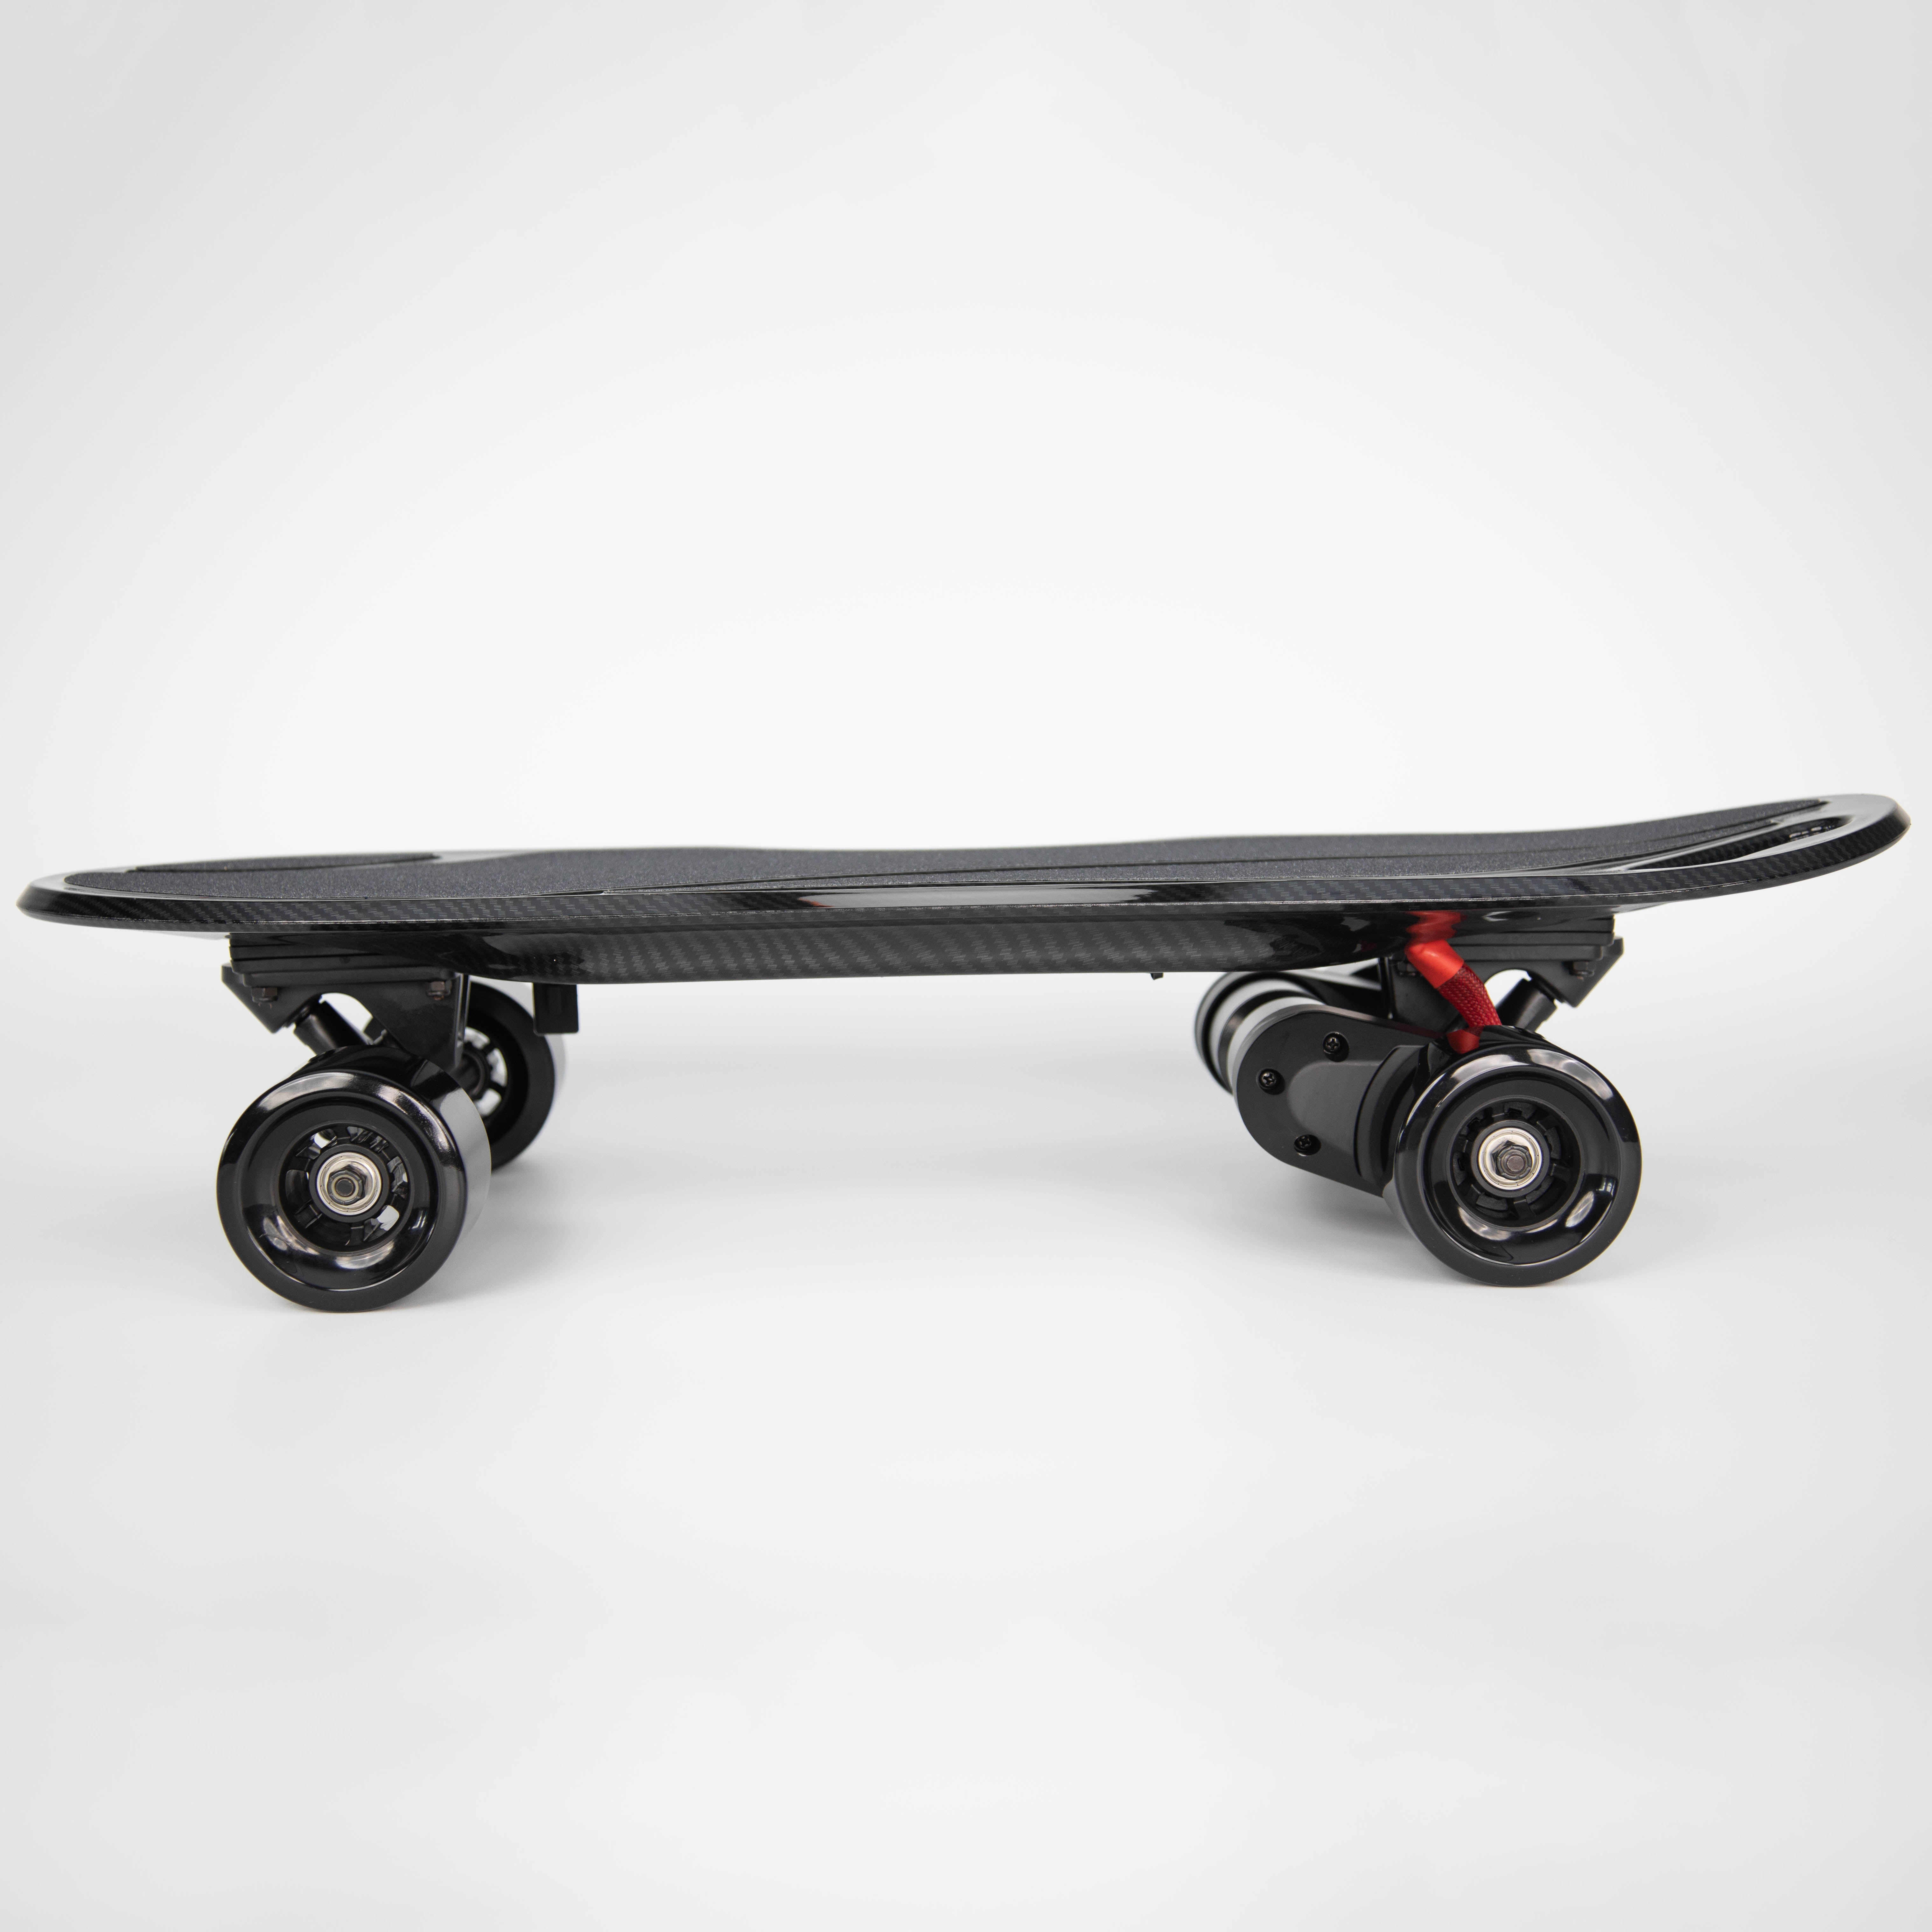 iFasun hangzhou factory aero plastic alloy deck wireless remote electric skateboard with dual belt motor